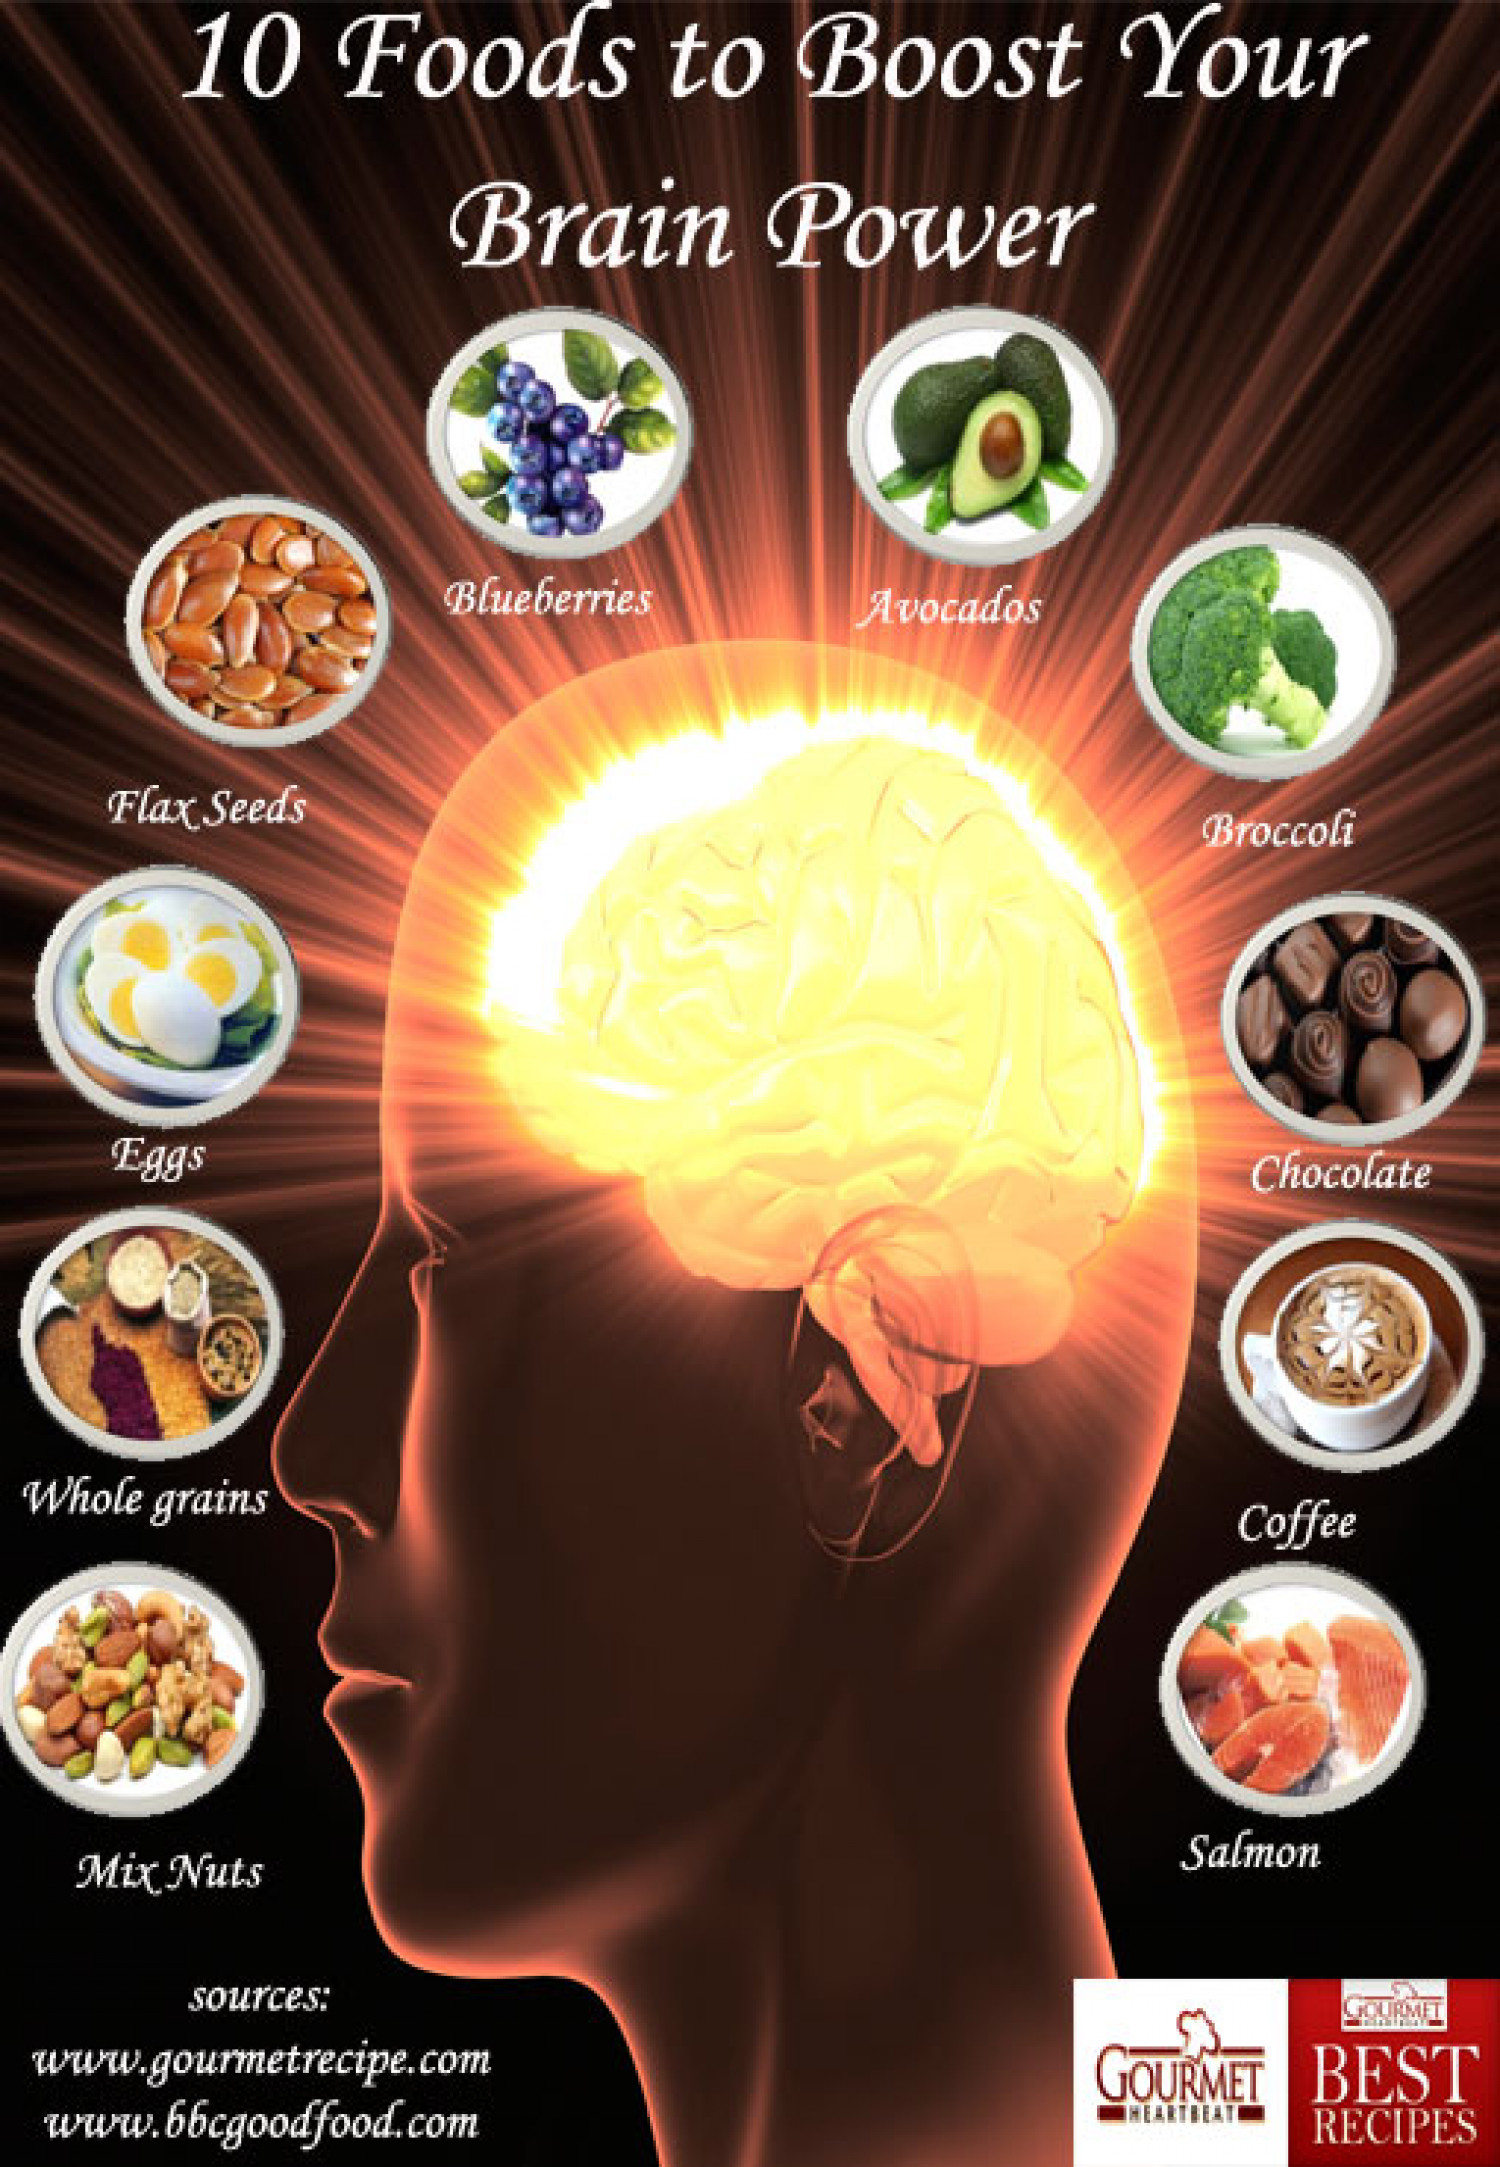 10 Foods to Boost Your Brain Power Infographic